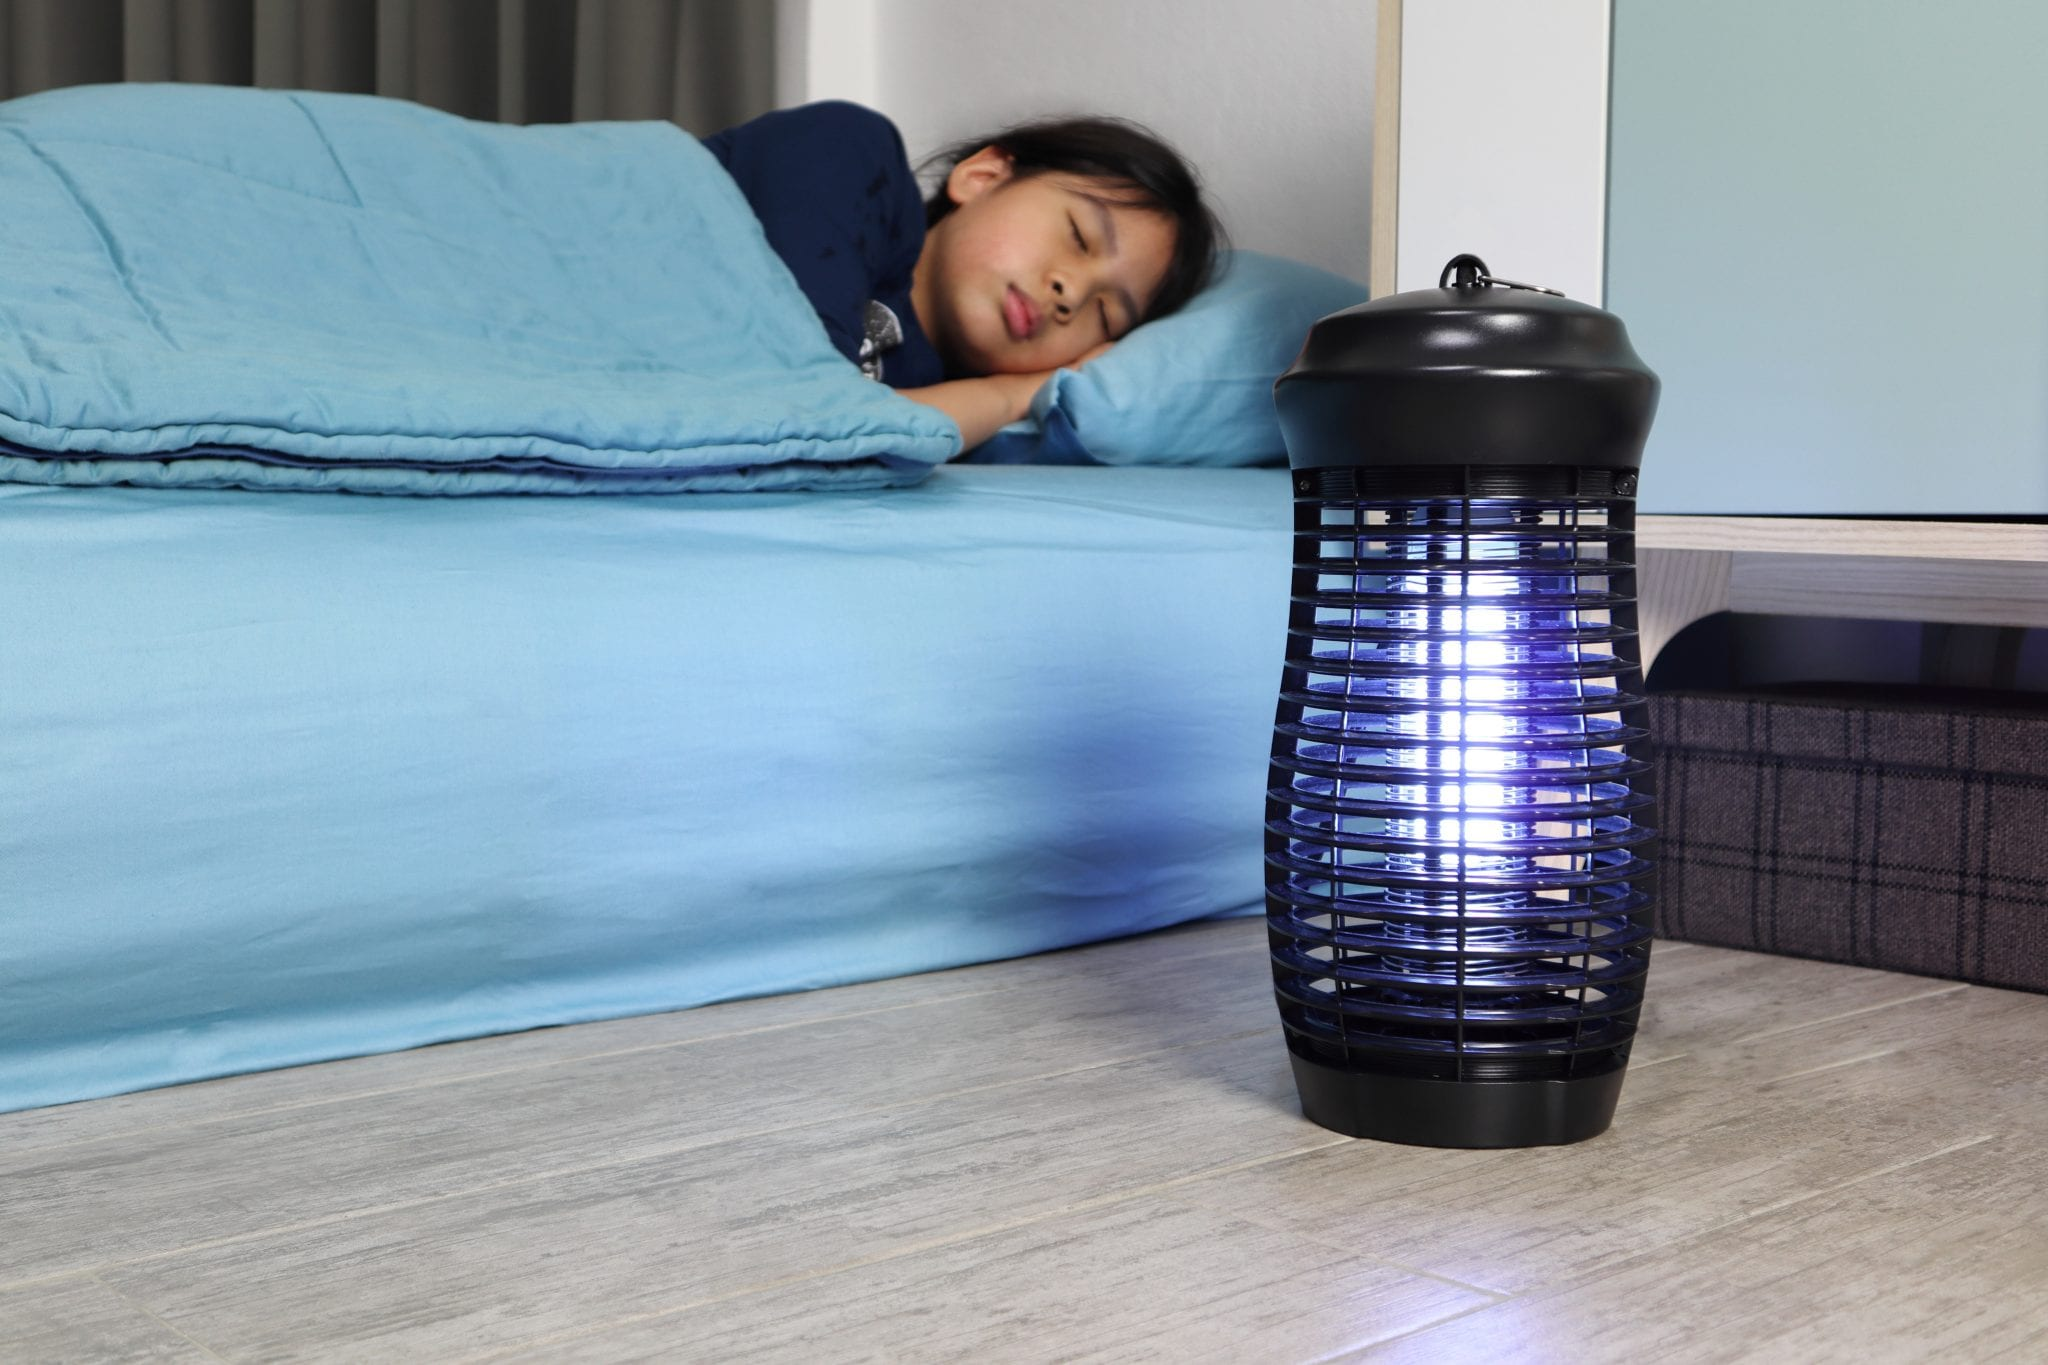 Child sleeping on mattress with blue sheets and bug zapper on the floor next to her